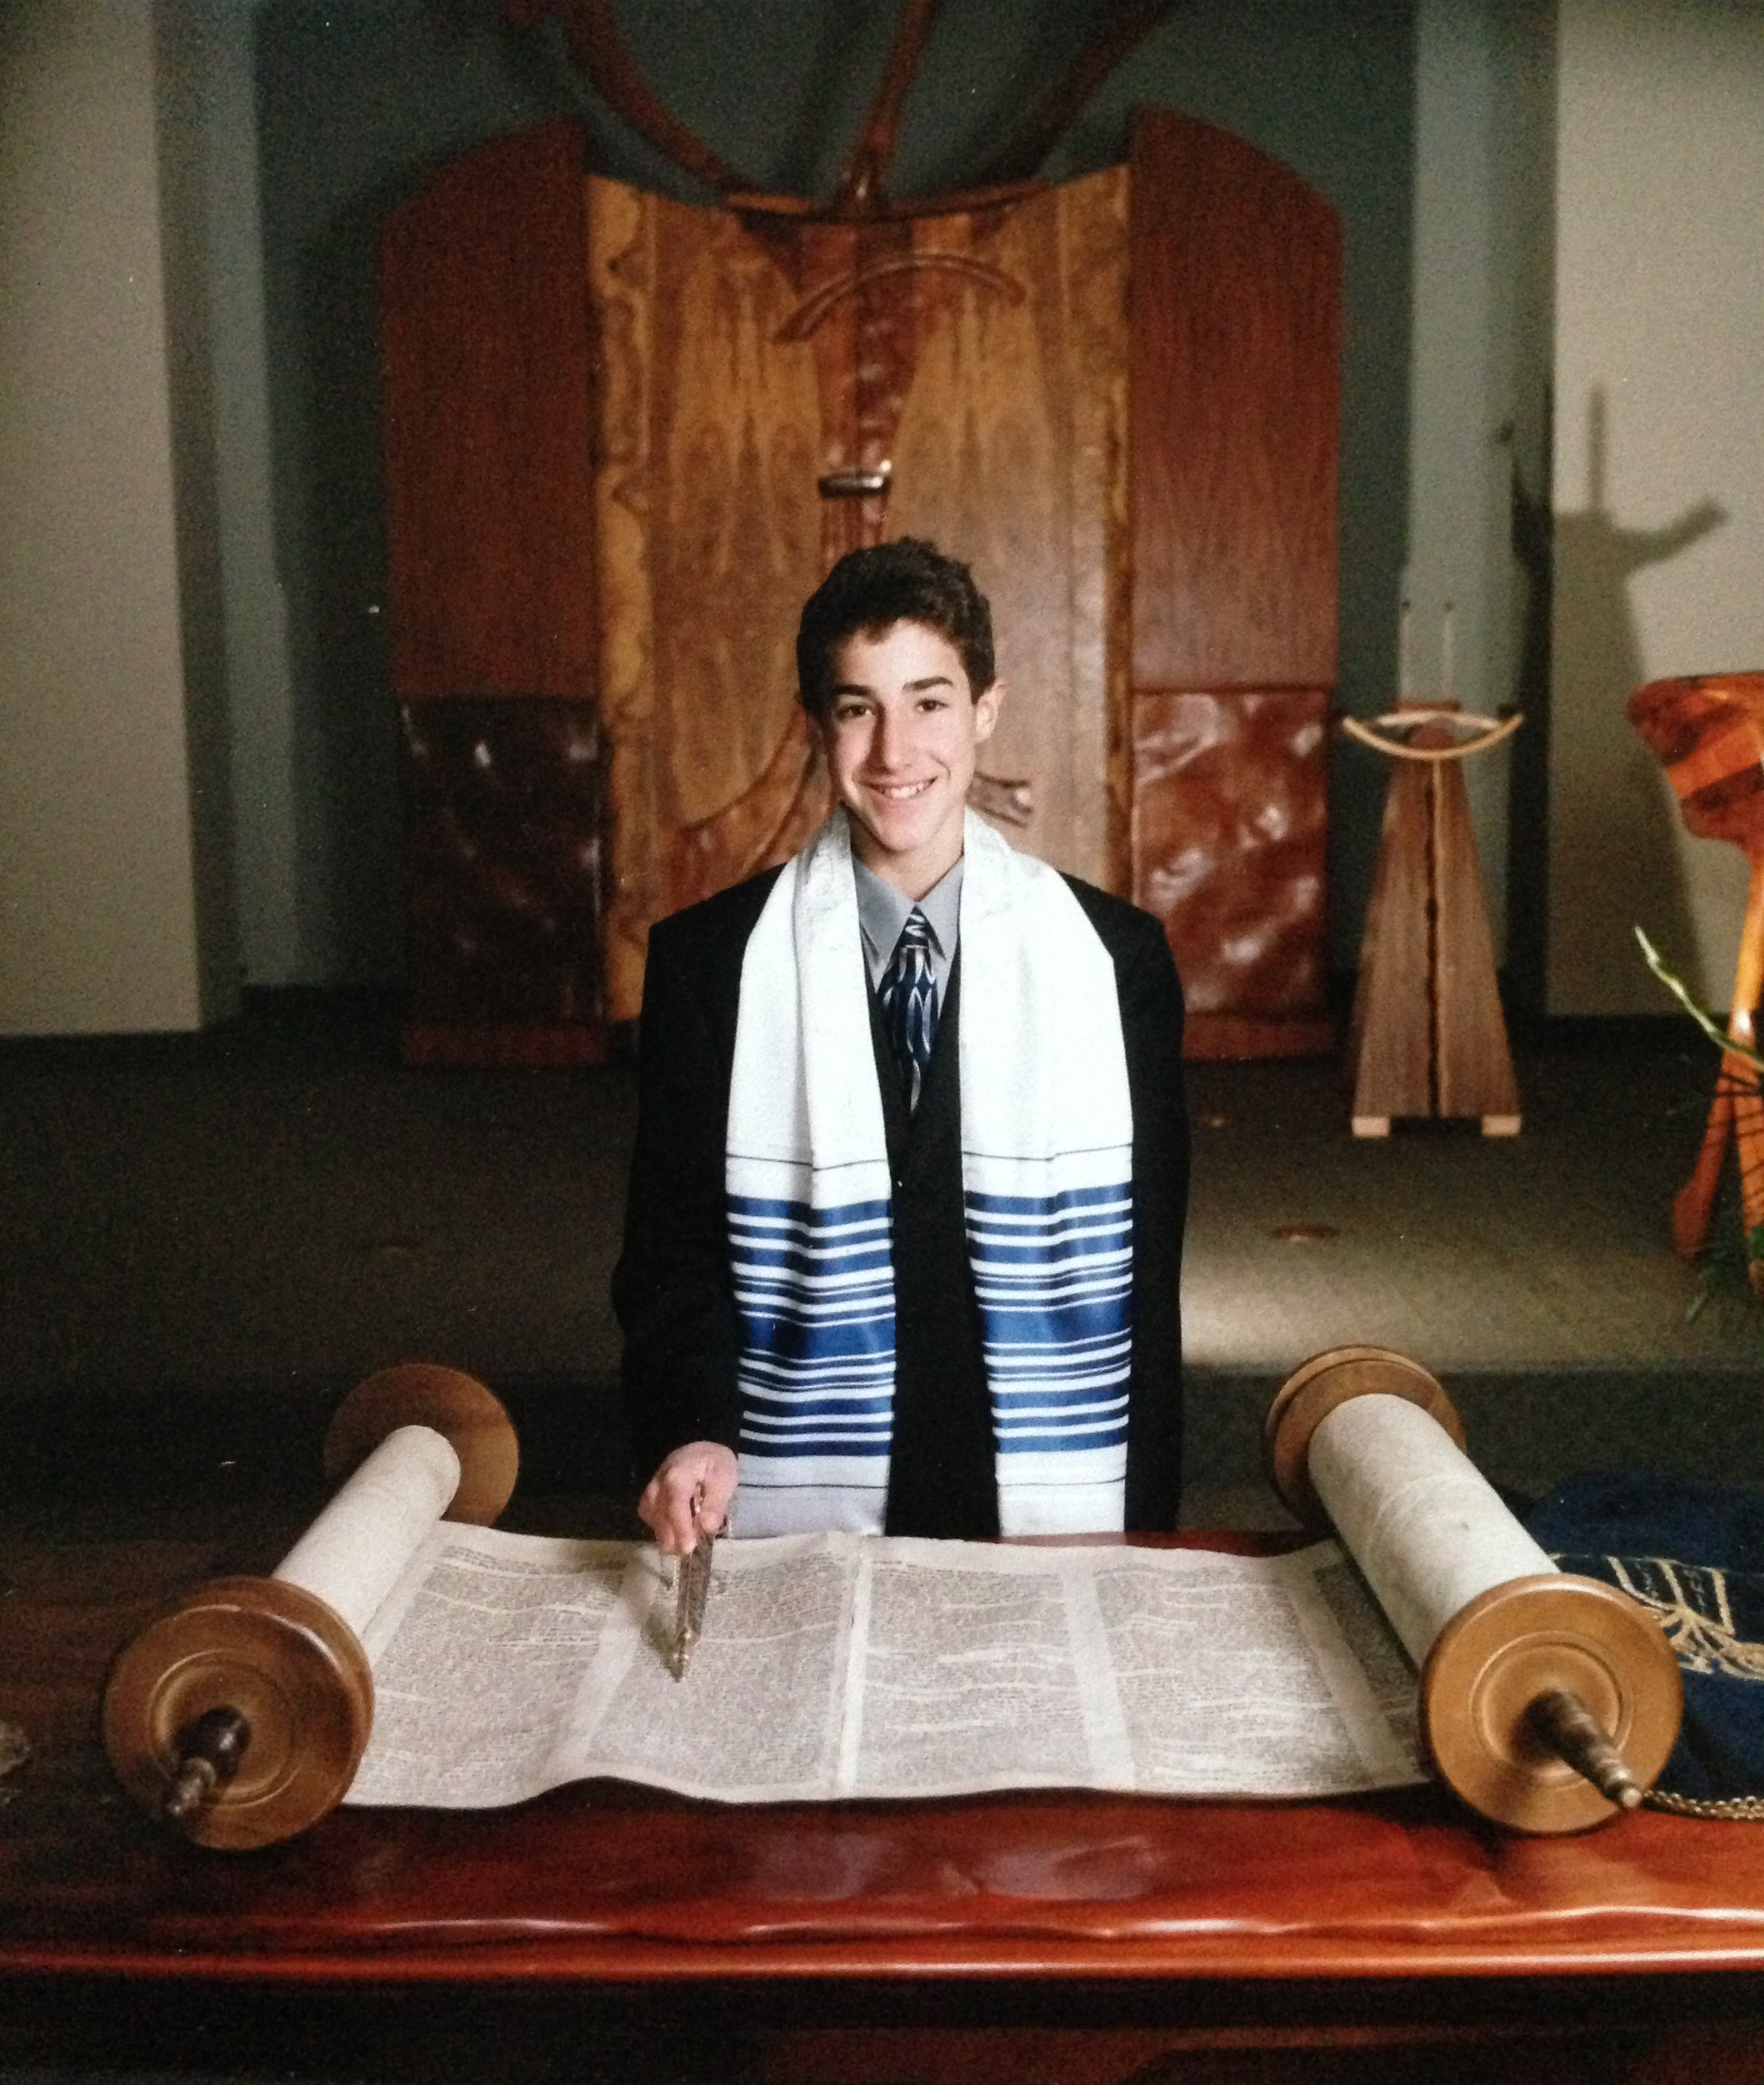 http://rebarproject.org/radical-reinventionb/2014/11/3/ethans-bar-mitzvah-c-by-ethan-kupferberg